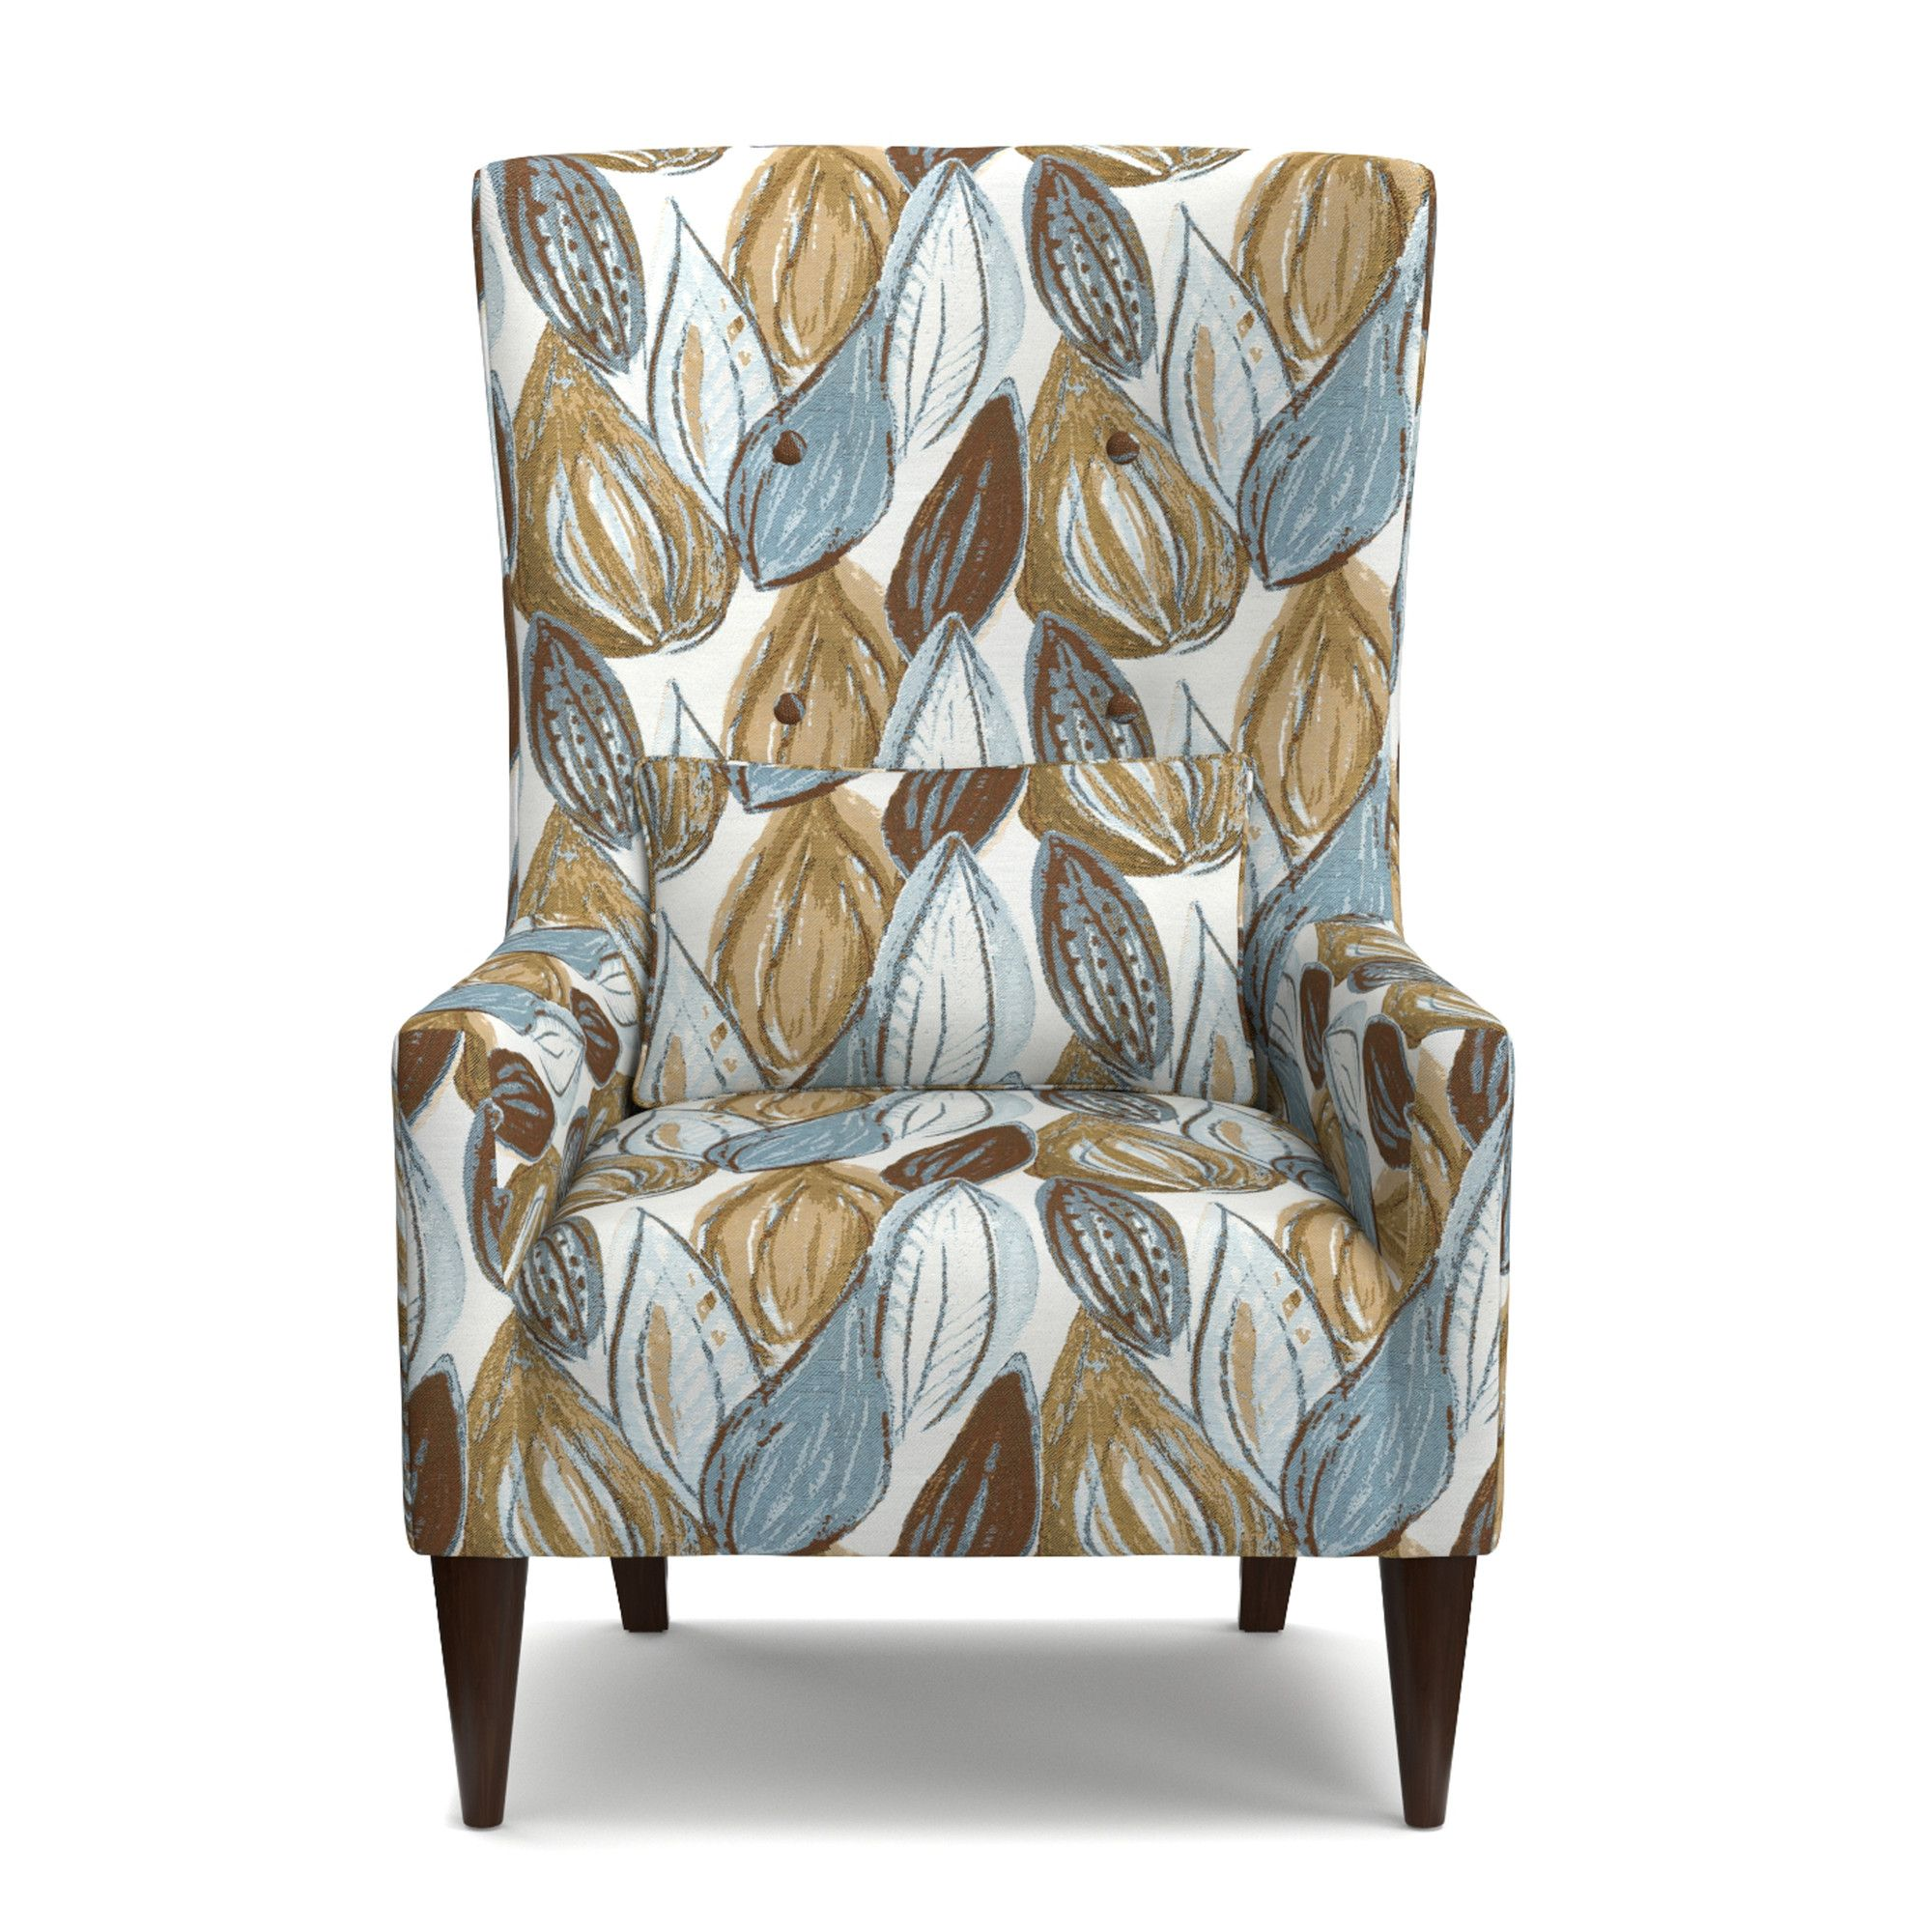 Lesley Shelter High Back Wing Chair Upholstery